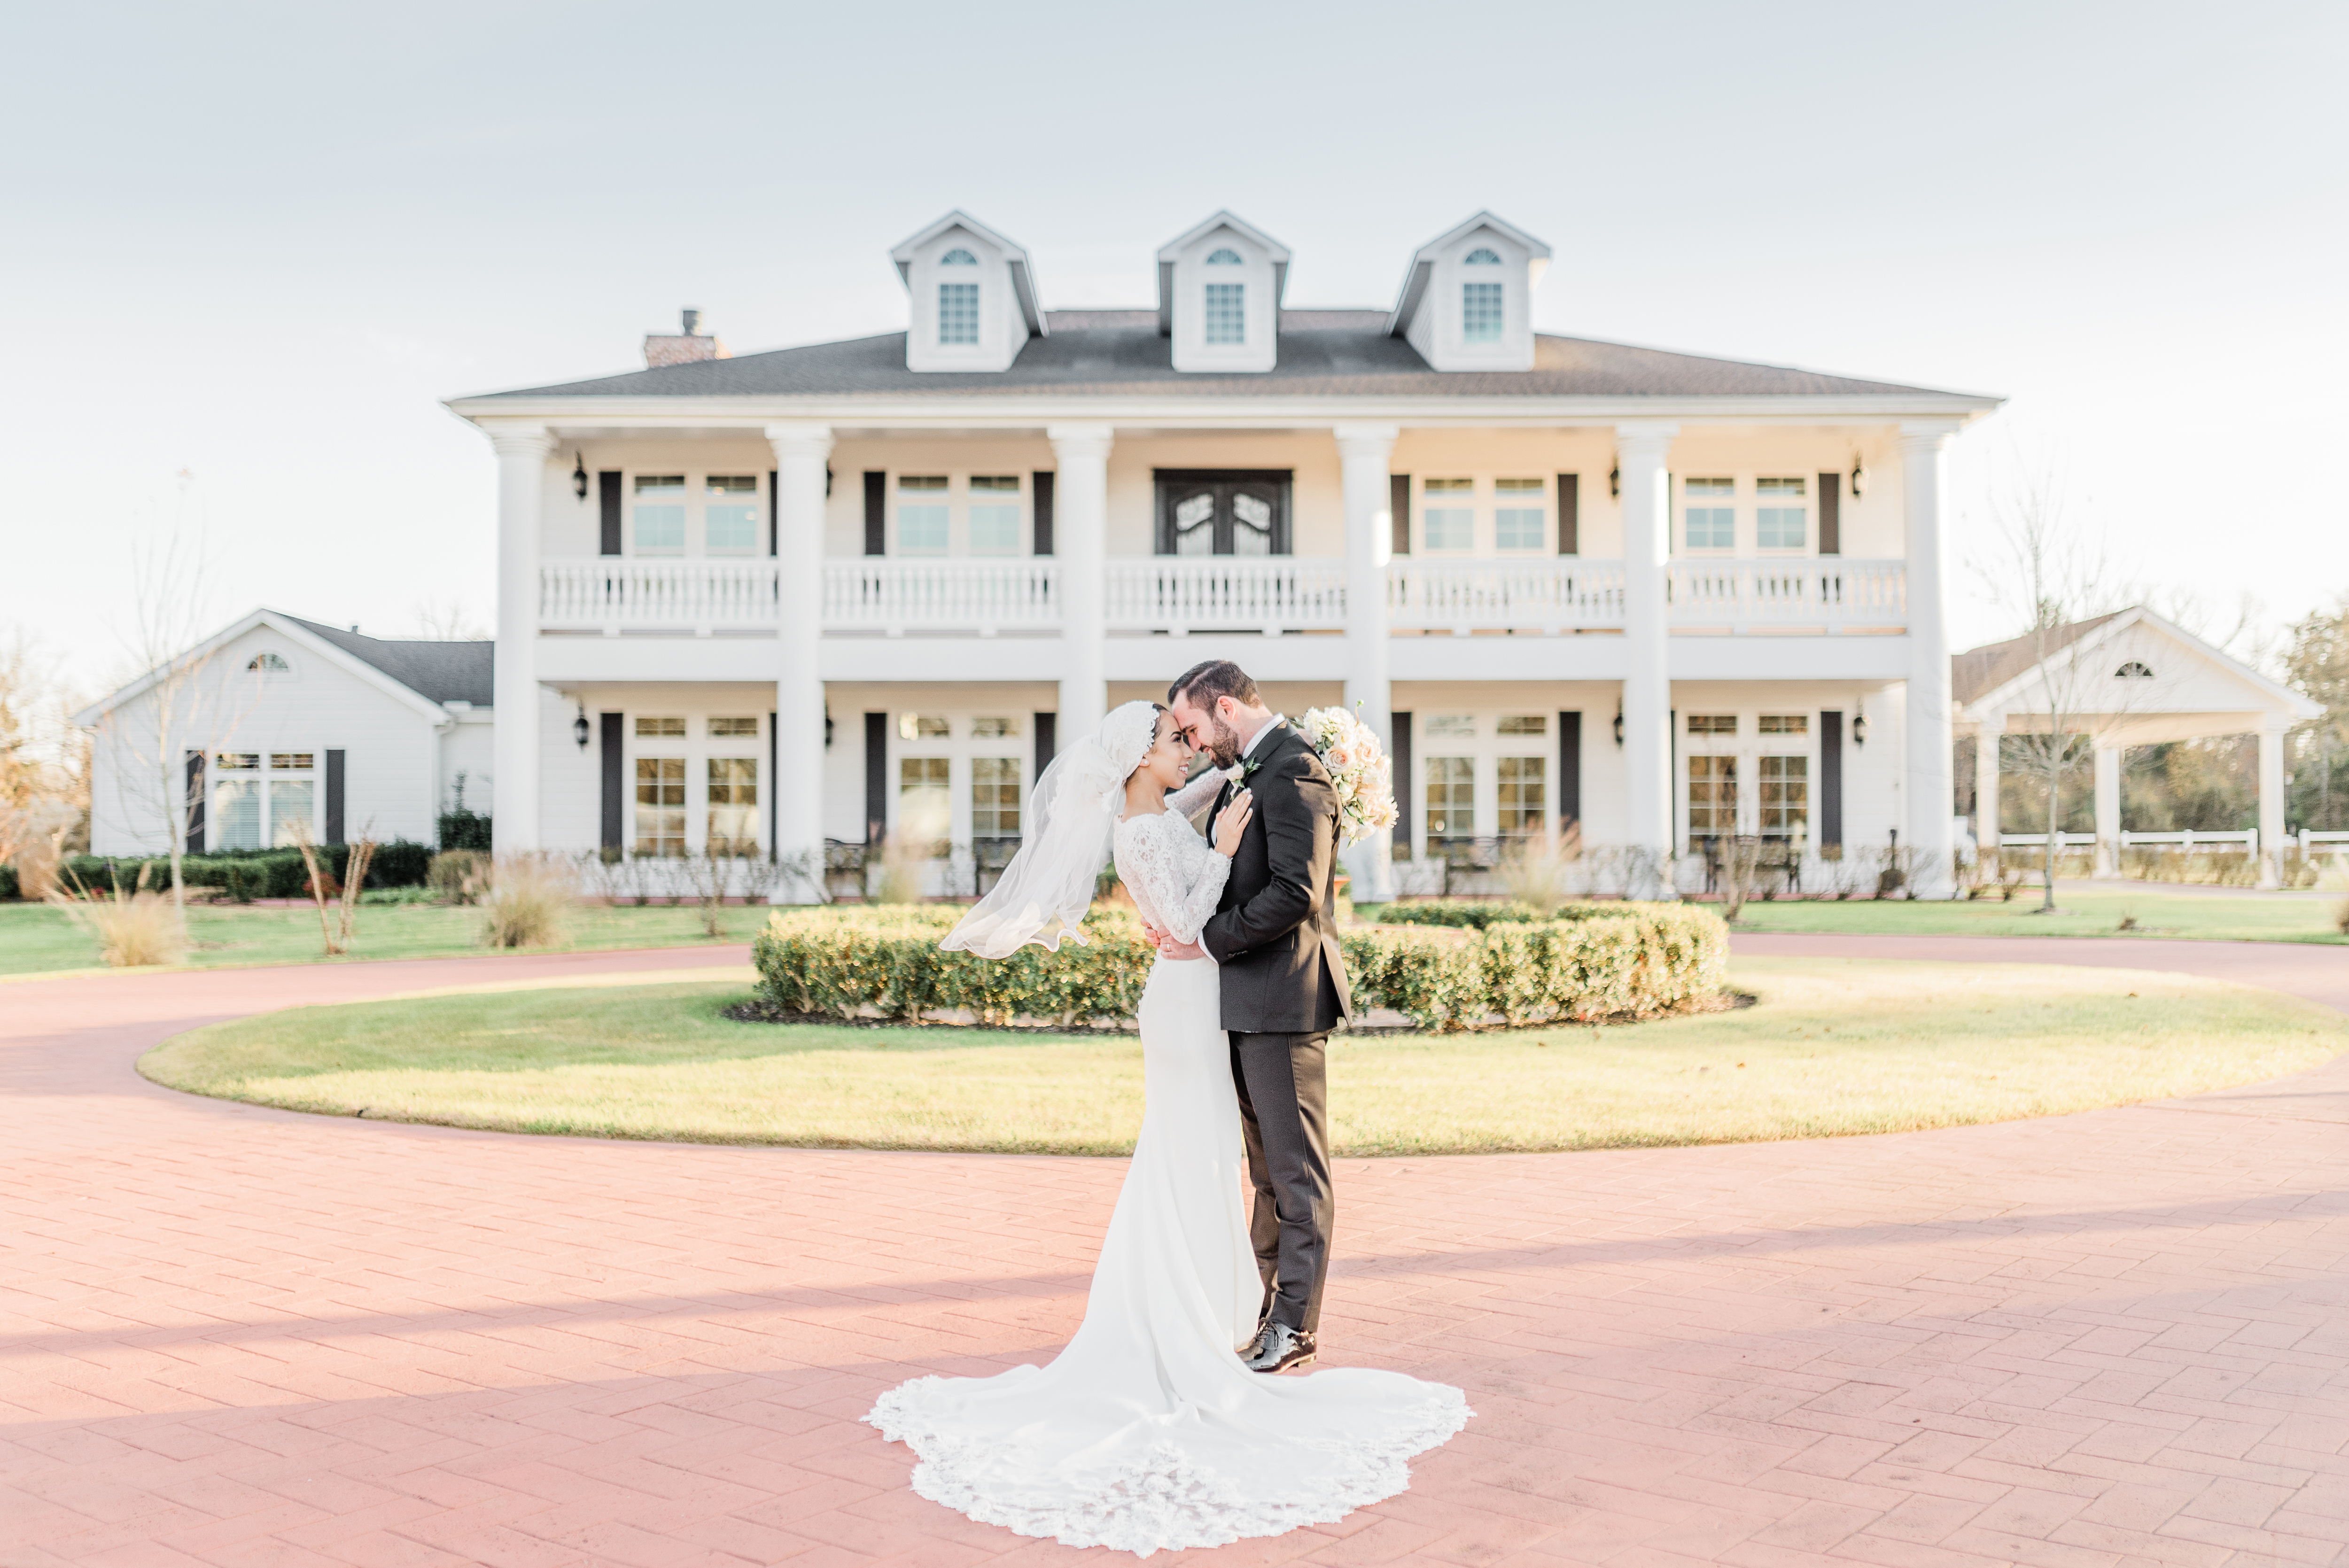 Bride and Groom Portraits Long Train Veil Blush Rose Bouquet | The Springs in Rockwall Texas by DFW Dallas Fort Worth wedding photographer Karina Danielle Photography